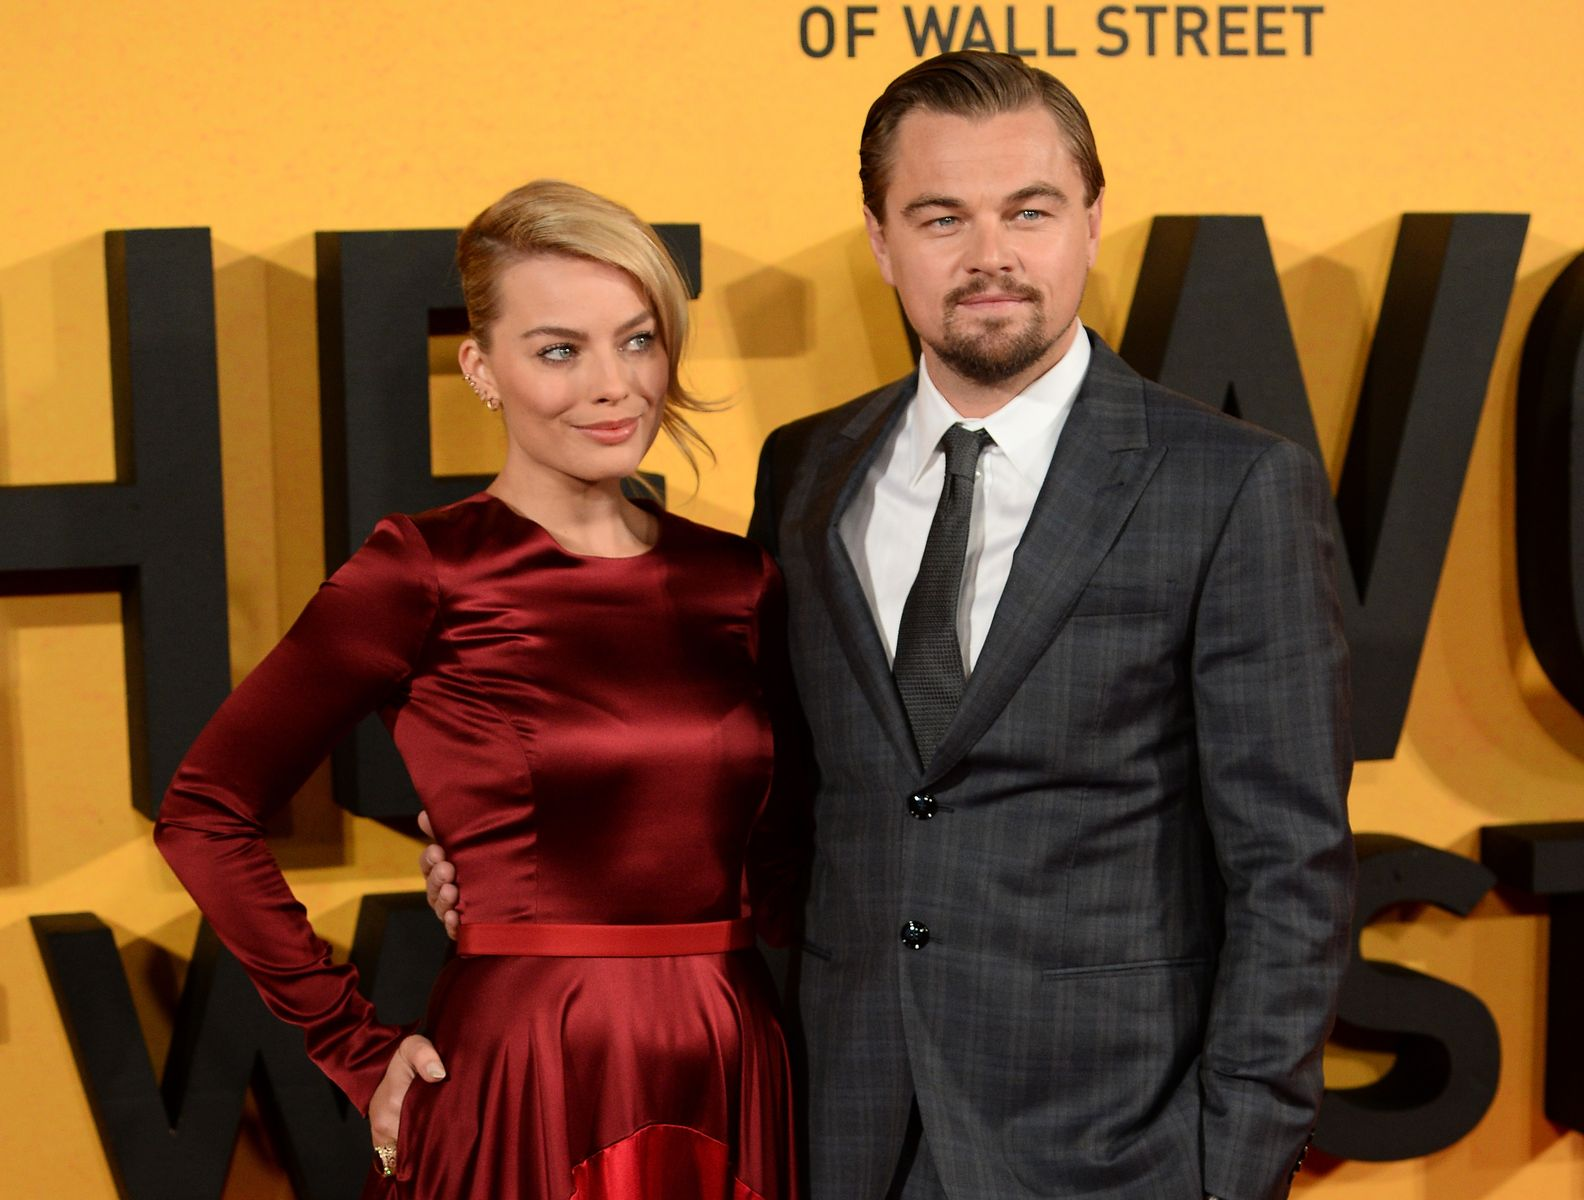 Leonardo DiCaprio and Margot Robbie at The Wolf of Wall Street UK premiere/Photo:Getty Images